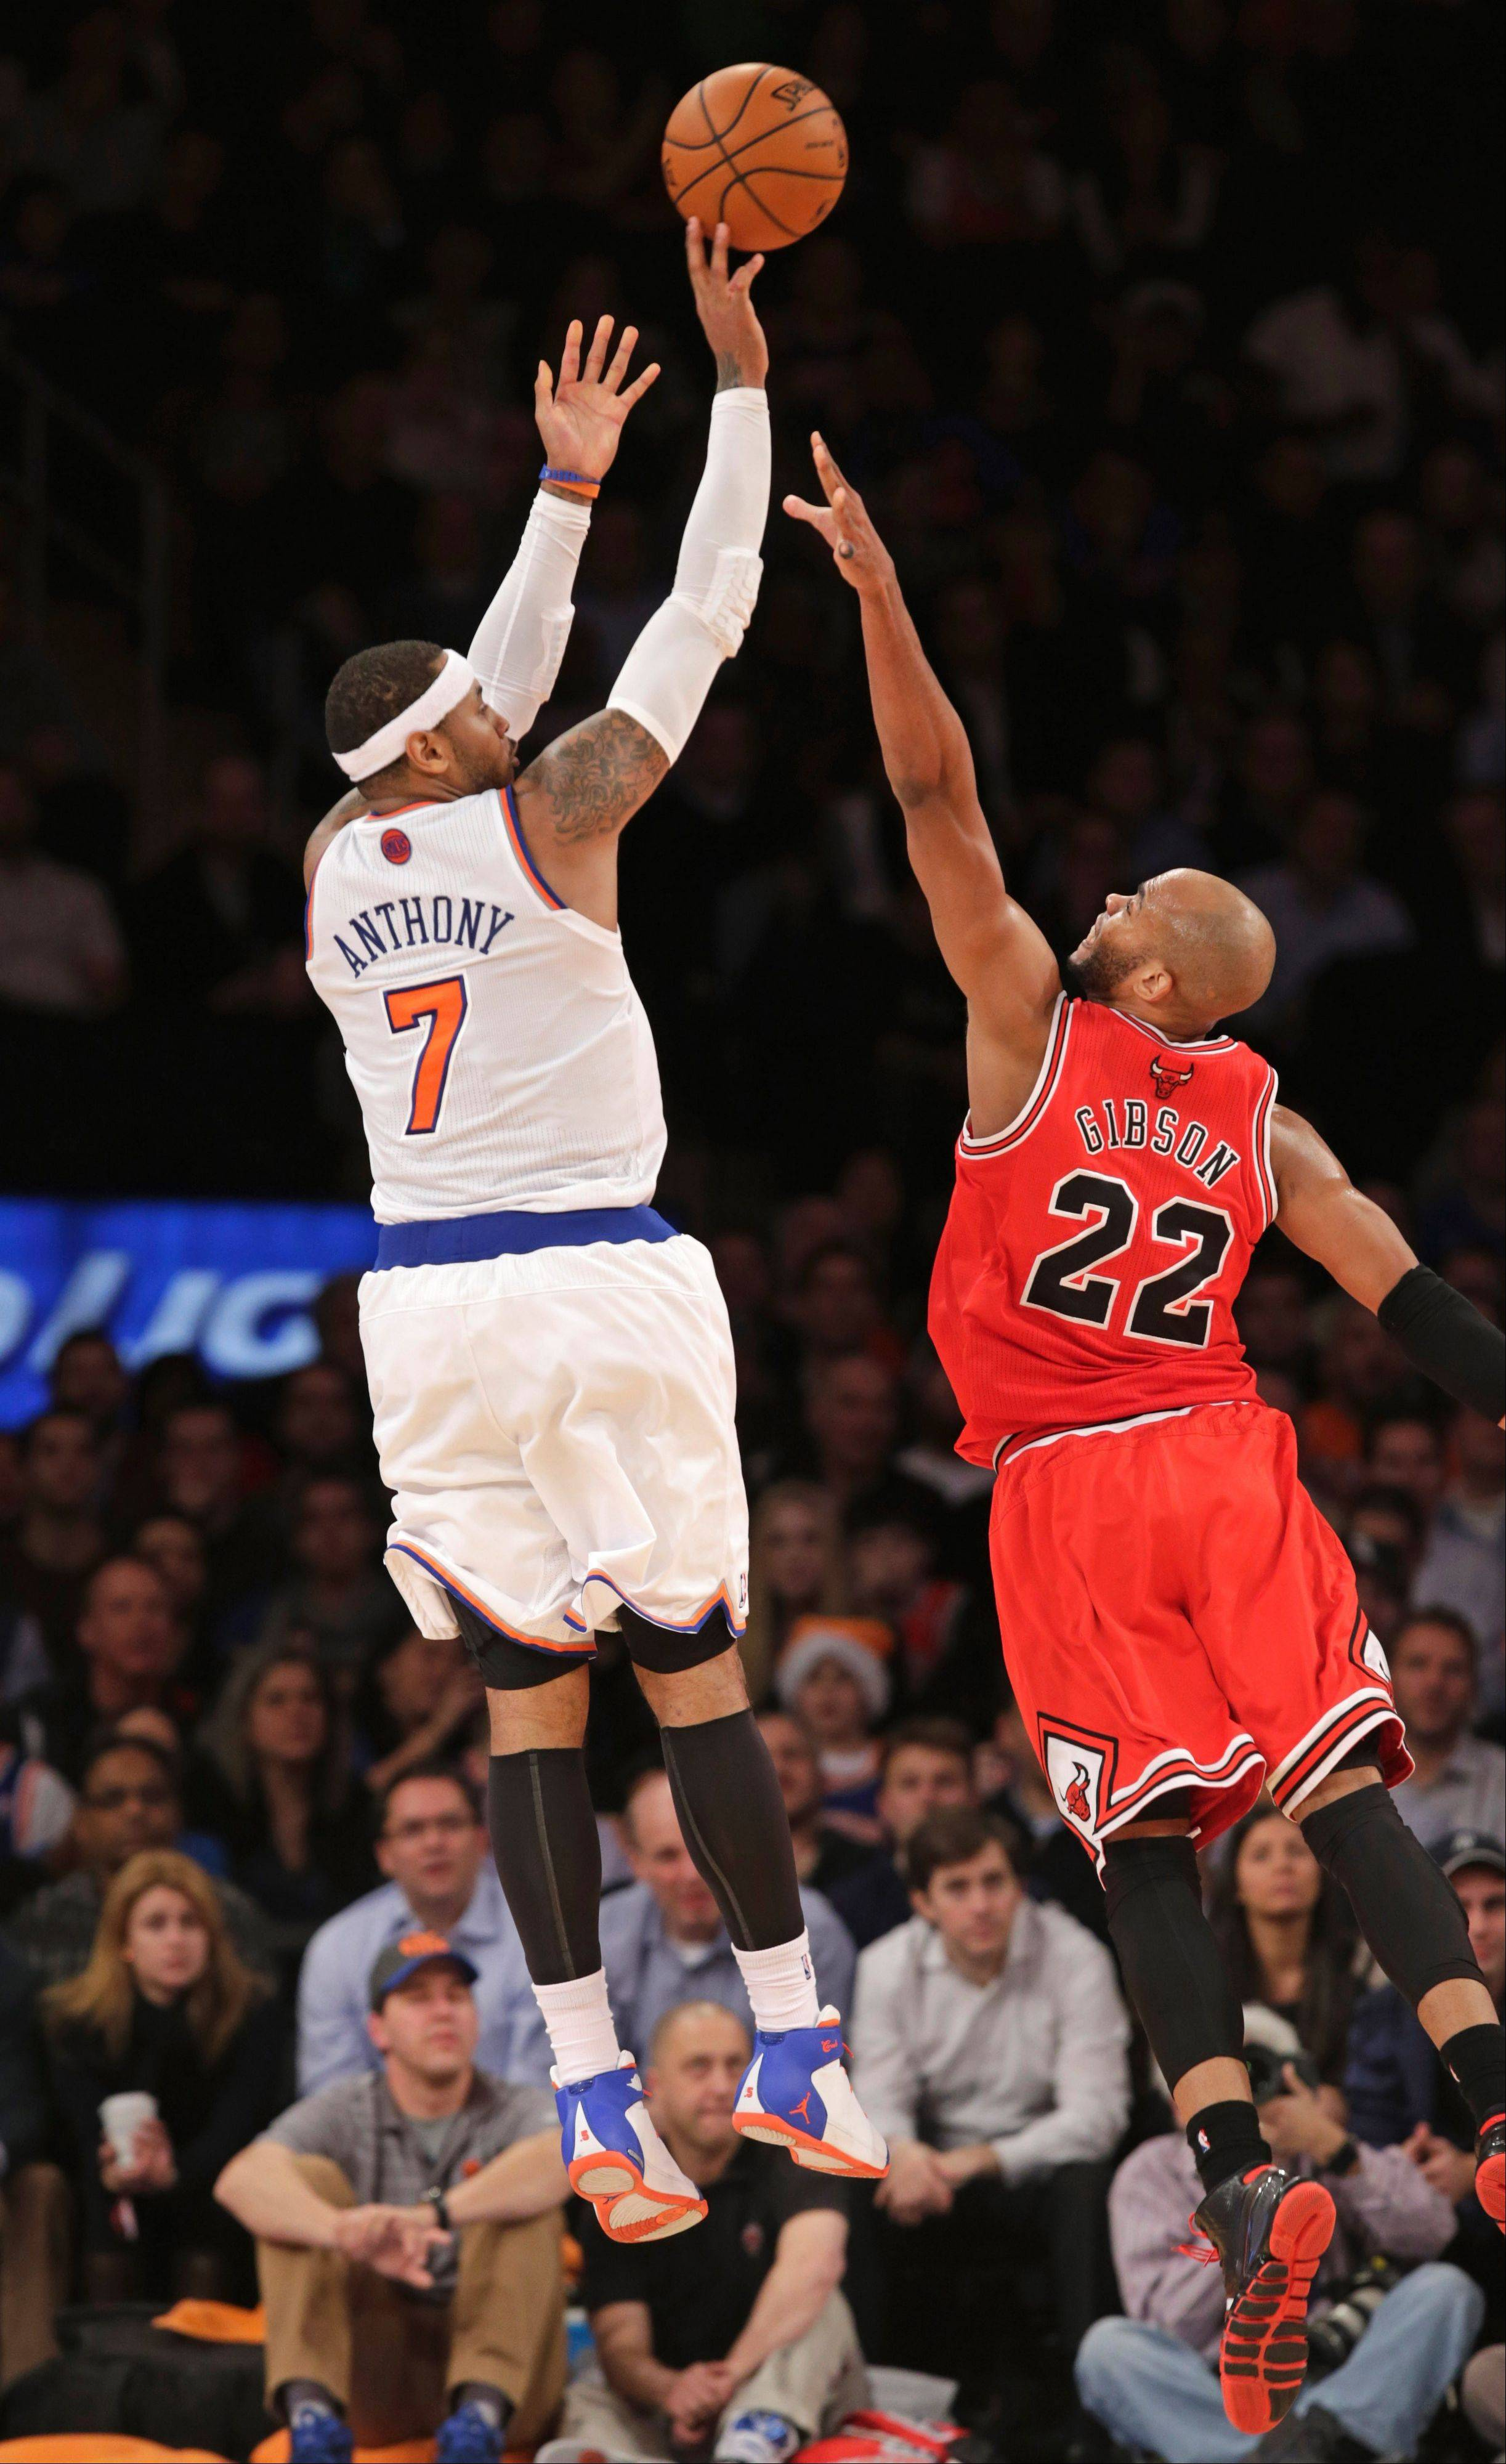 Knicks forward Carmelo Anthony shoots over Bulls forward Taj Gibson in a game earlier this season.